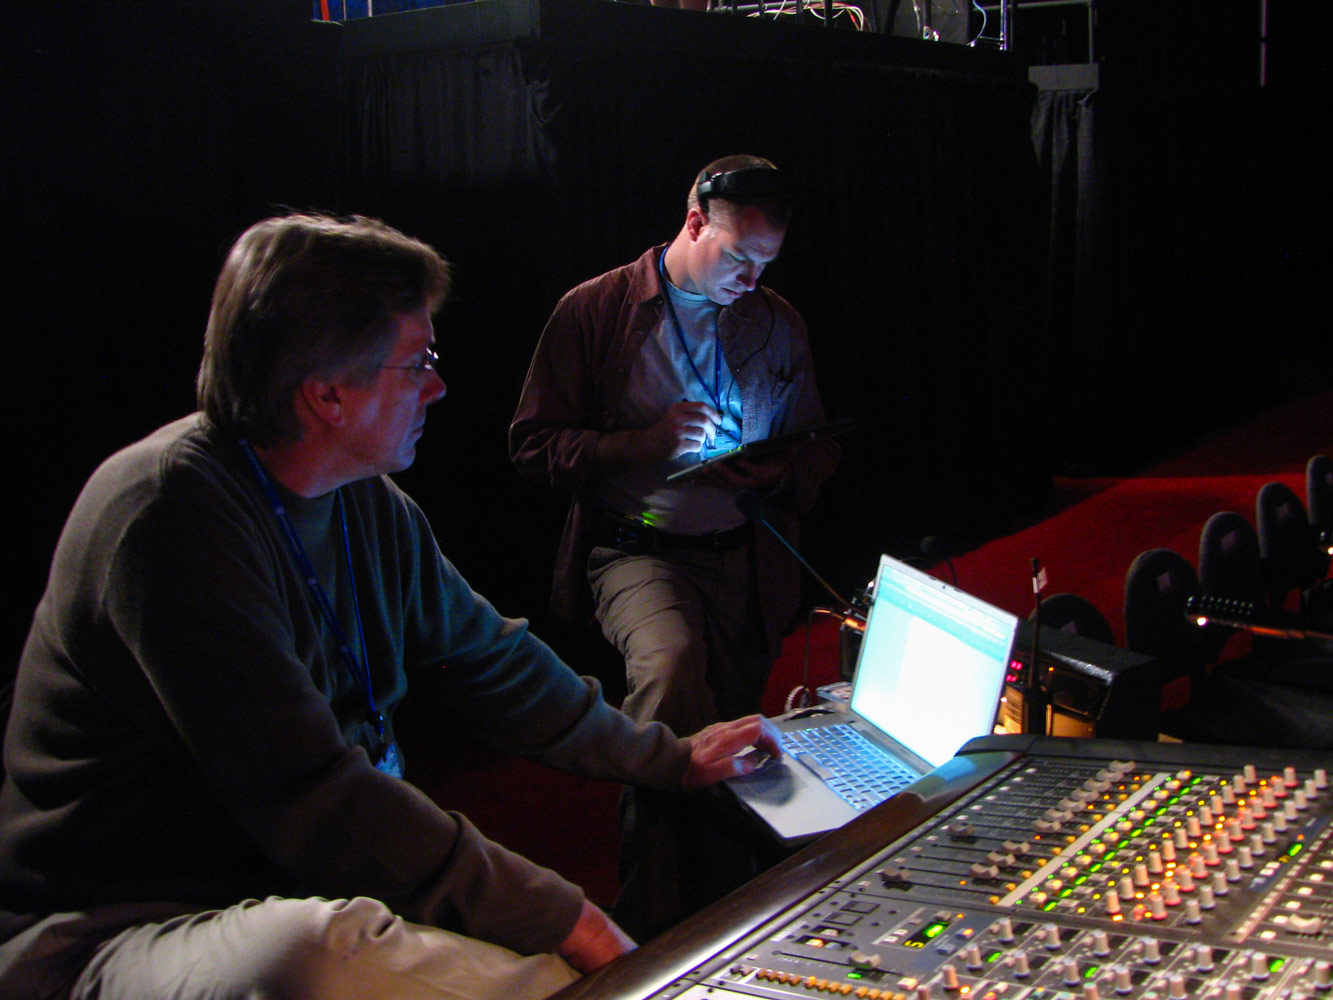 Mike Abbott at the FOH console and Kelly Epperson adjusting the system EQ.